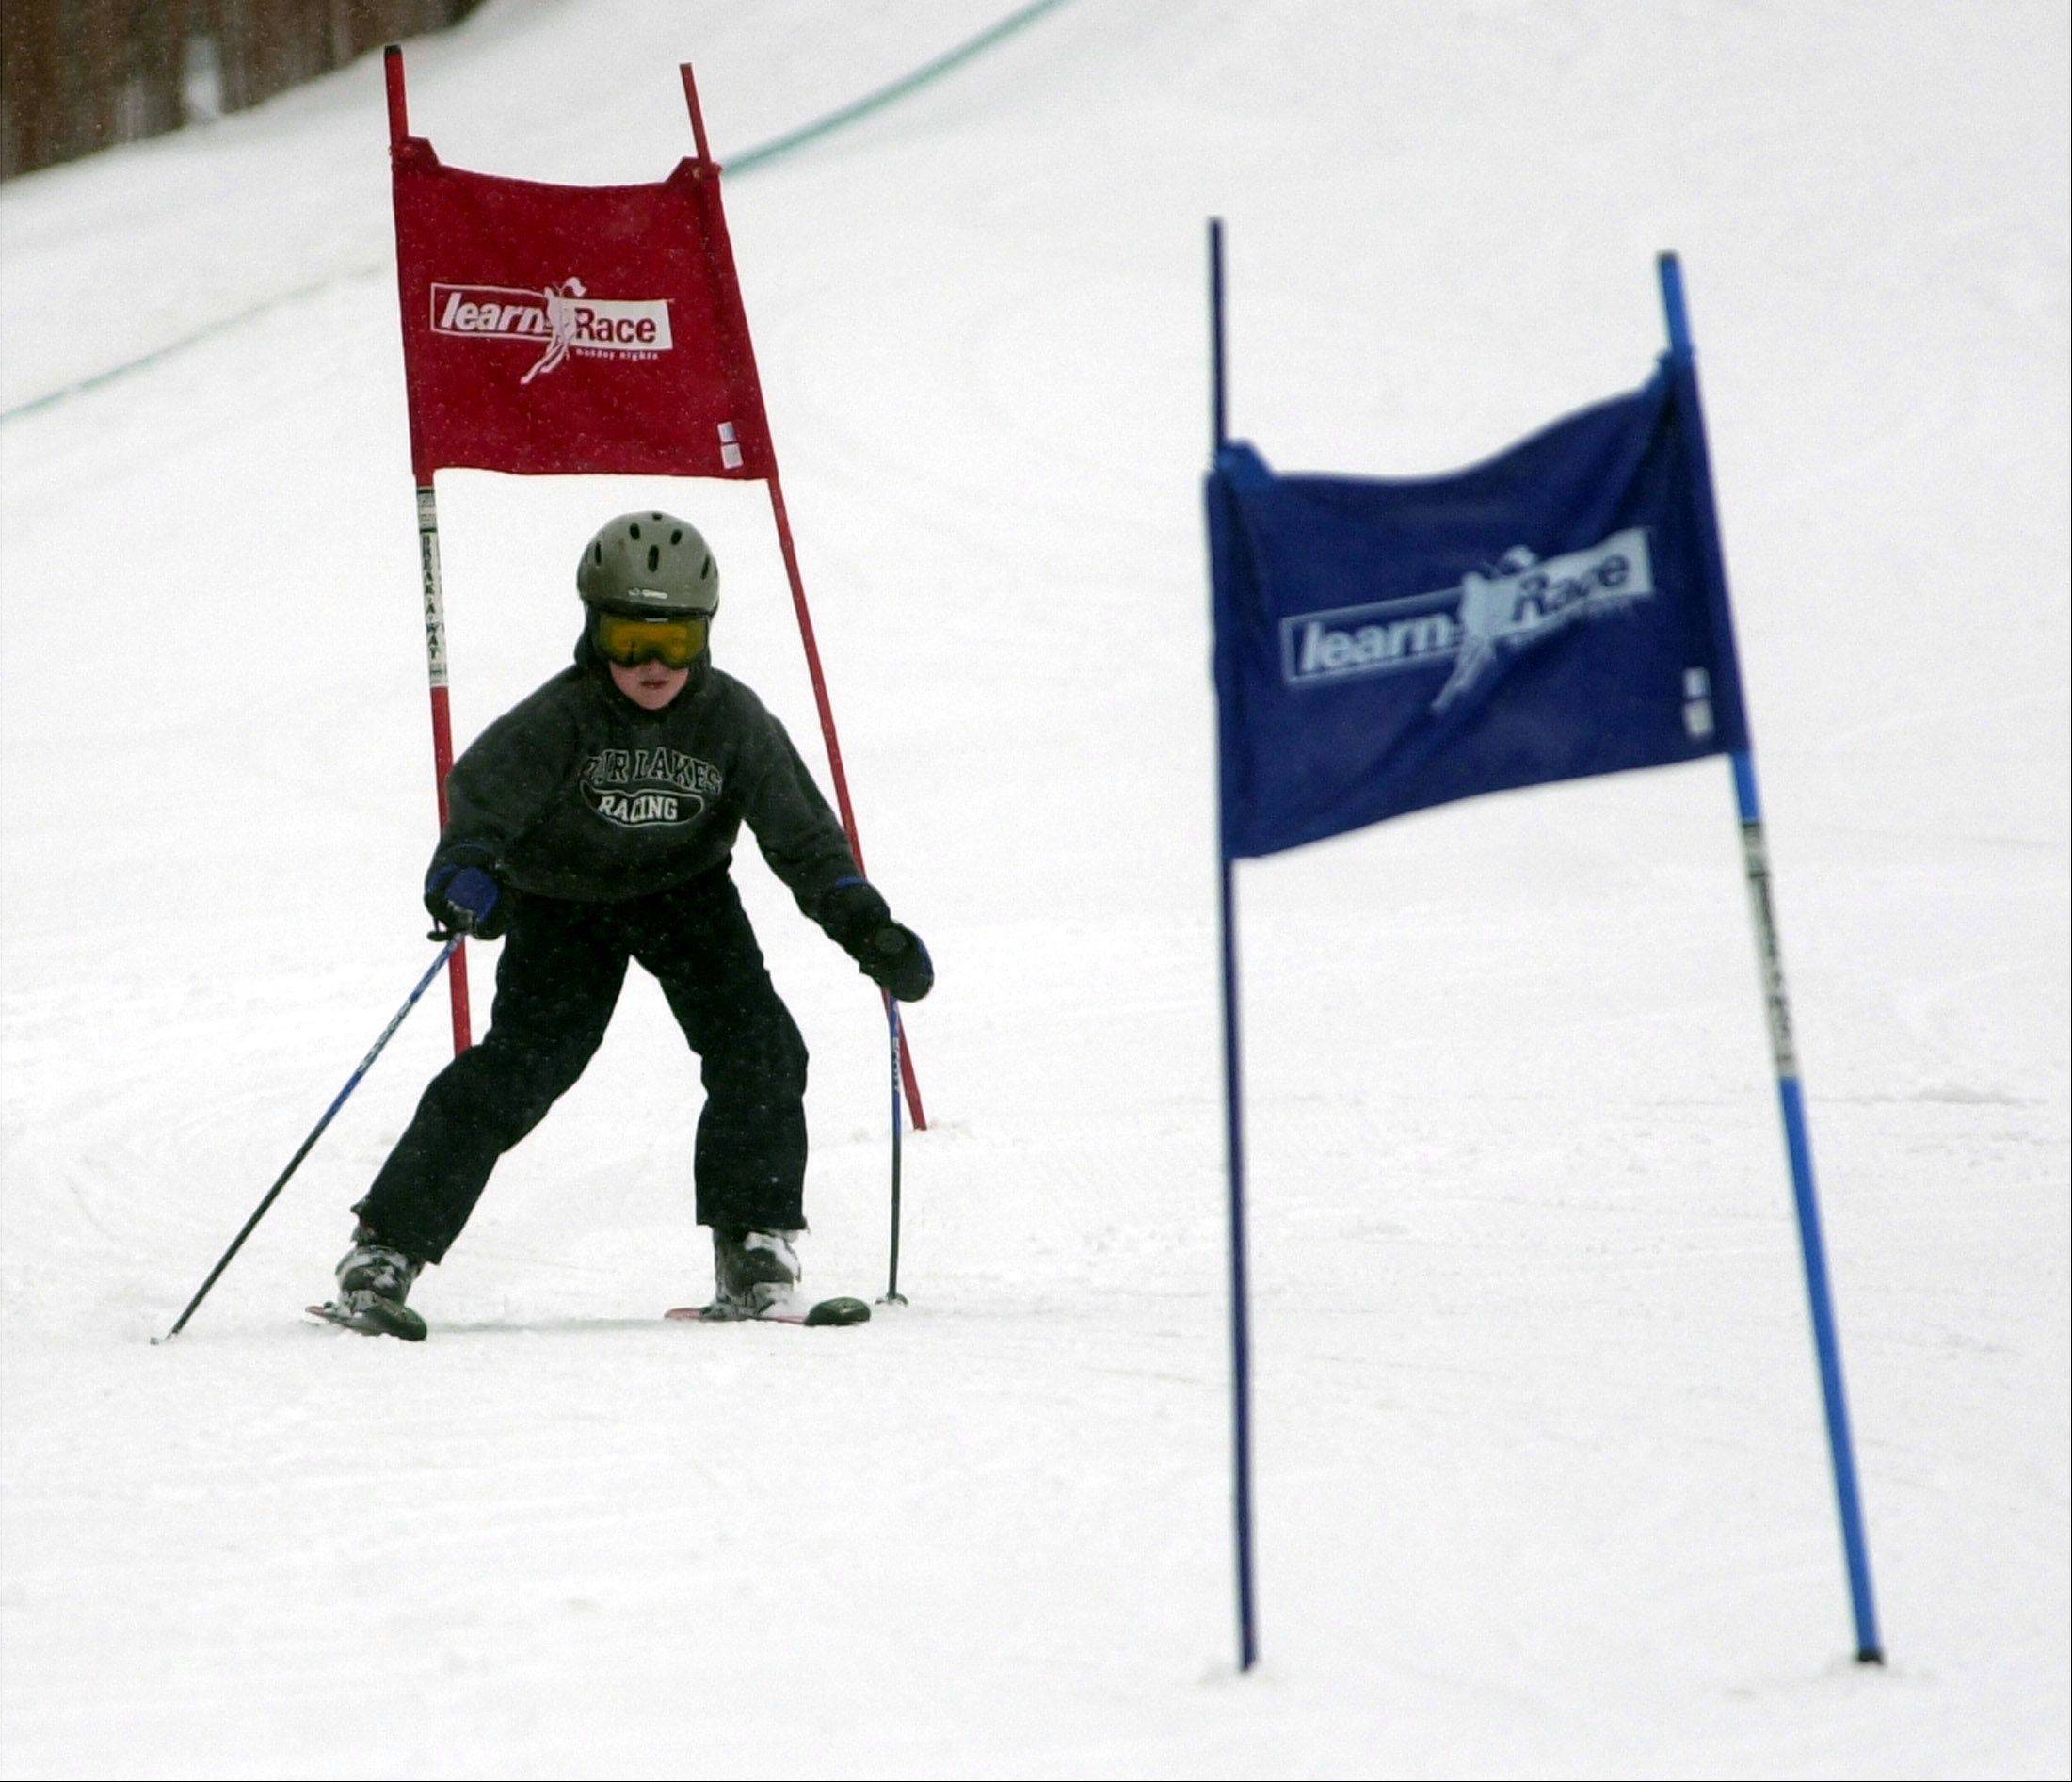 Four Lakes' Snofest Feb. 19 will feature races and racecourse activities as well as a torch parade.